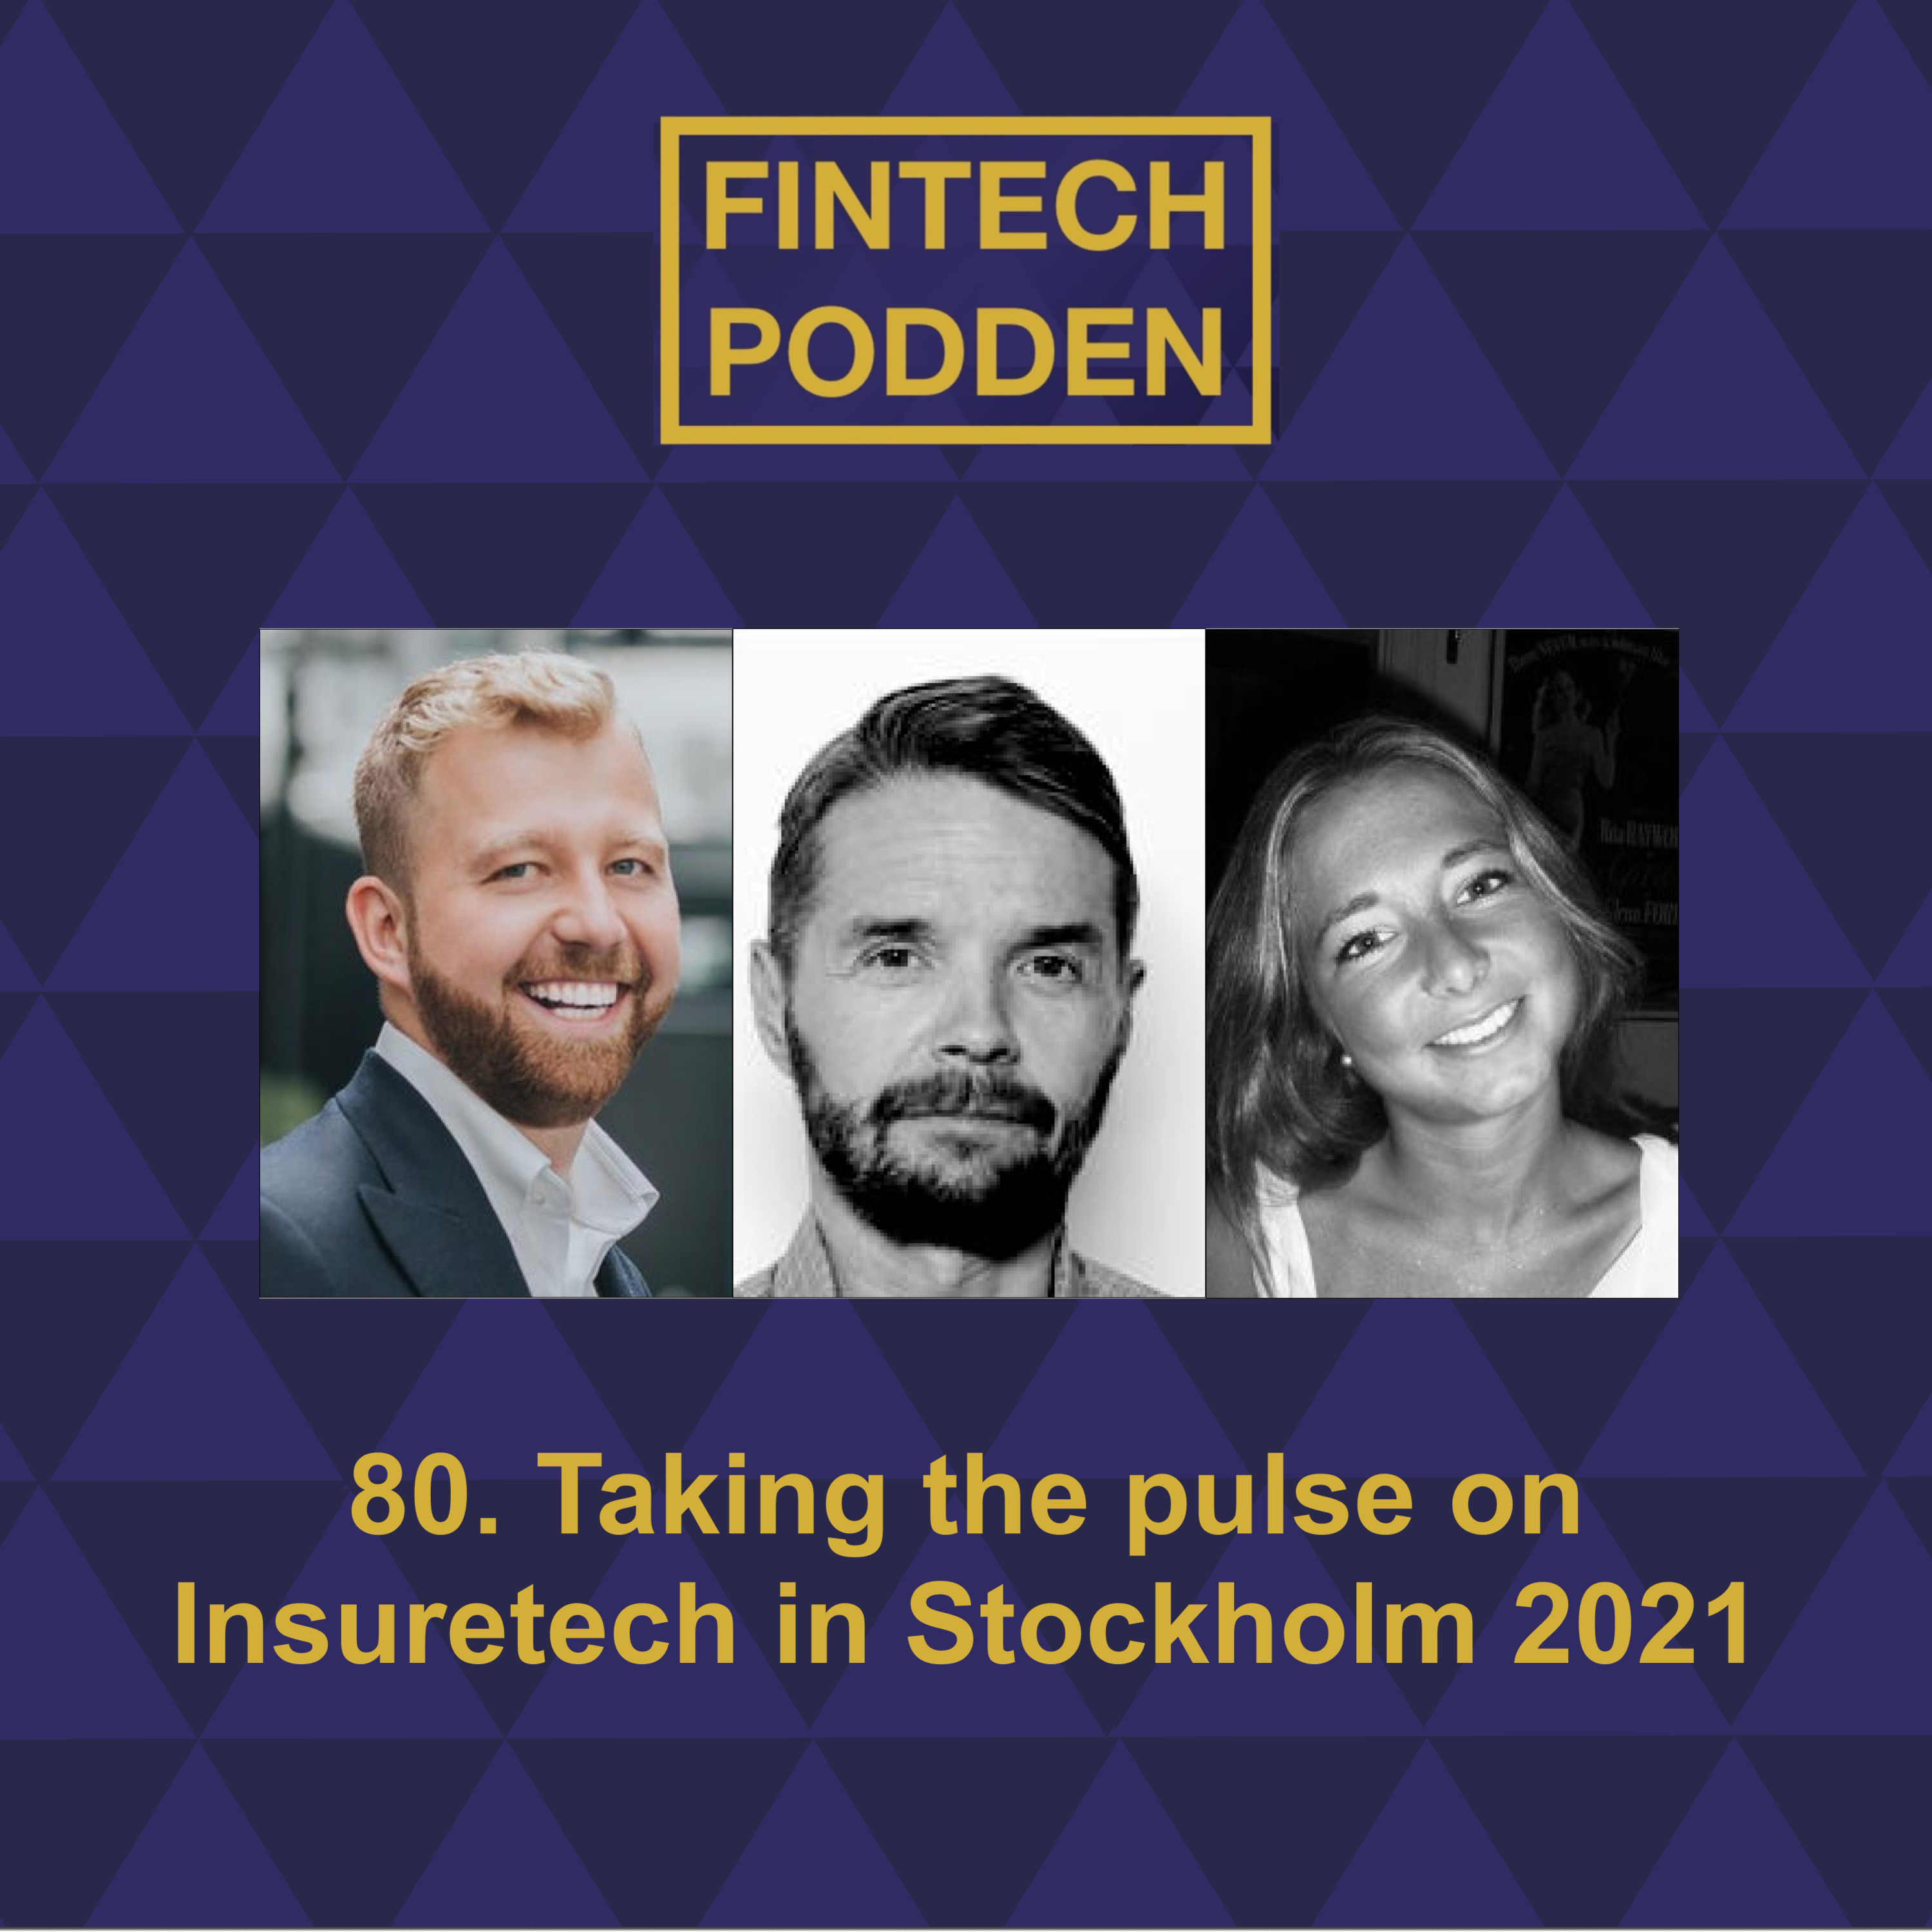 80. Taking the pulse on Insuretech in Stockholm 2021